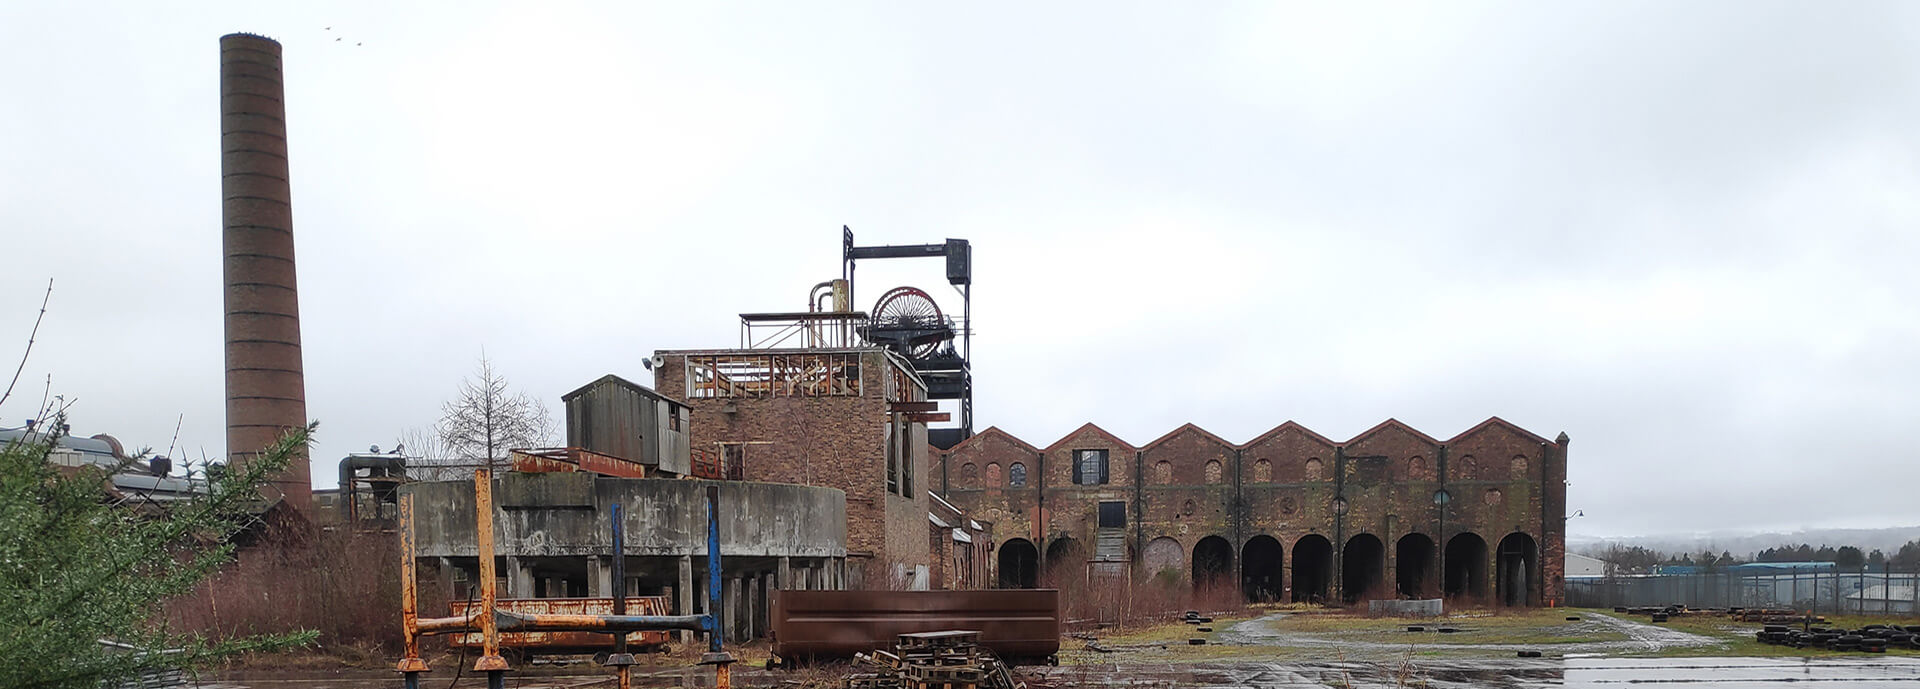 Abandoned and derelict coal mine